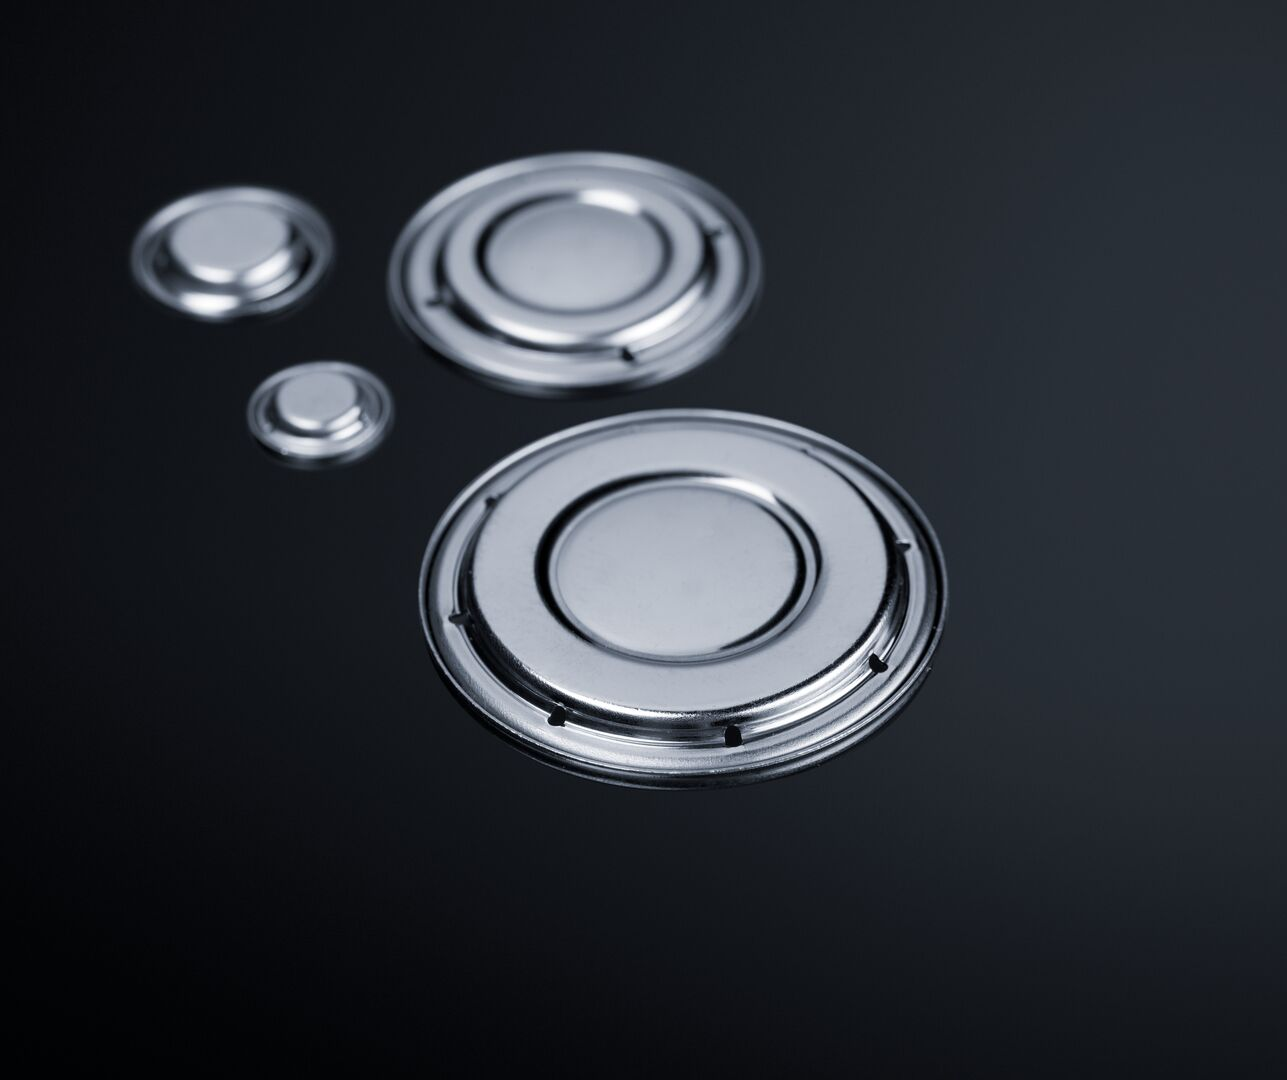 Plating components